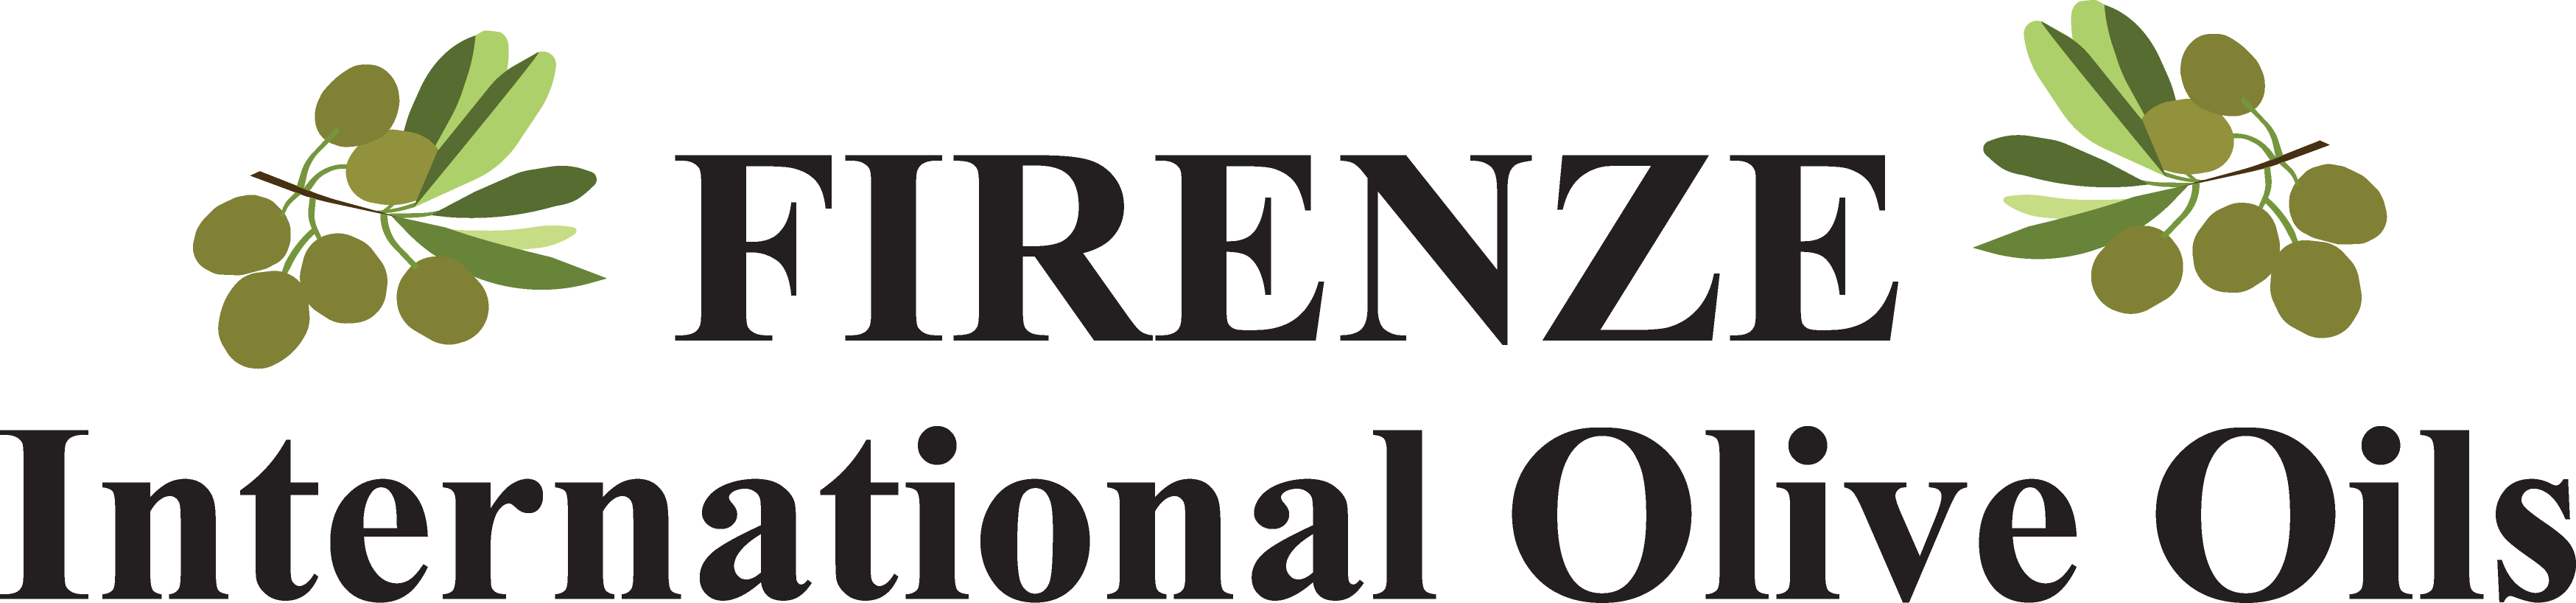 Firenze International Olive Oil Logo